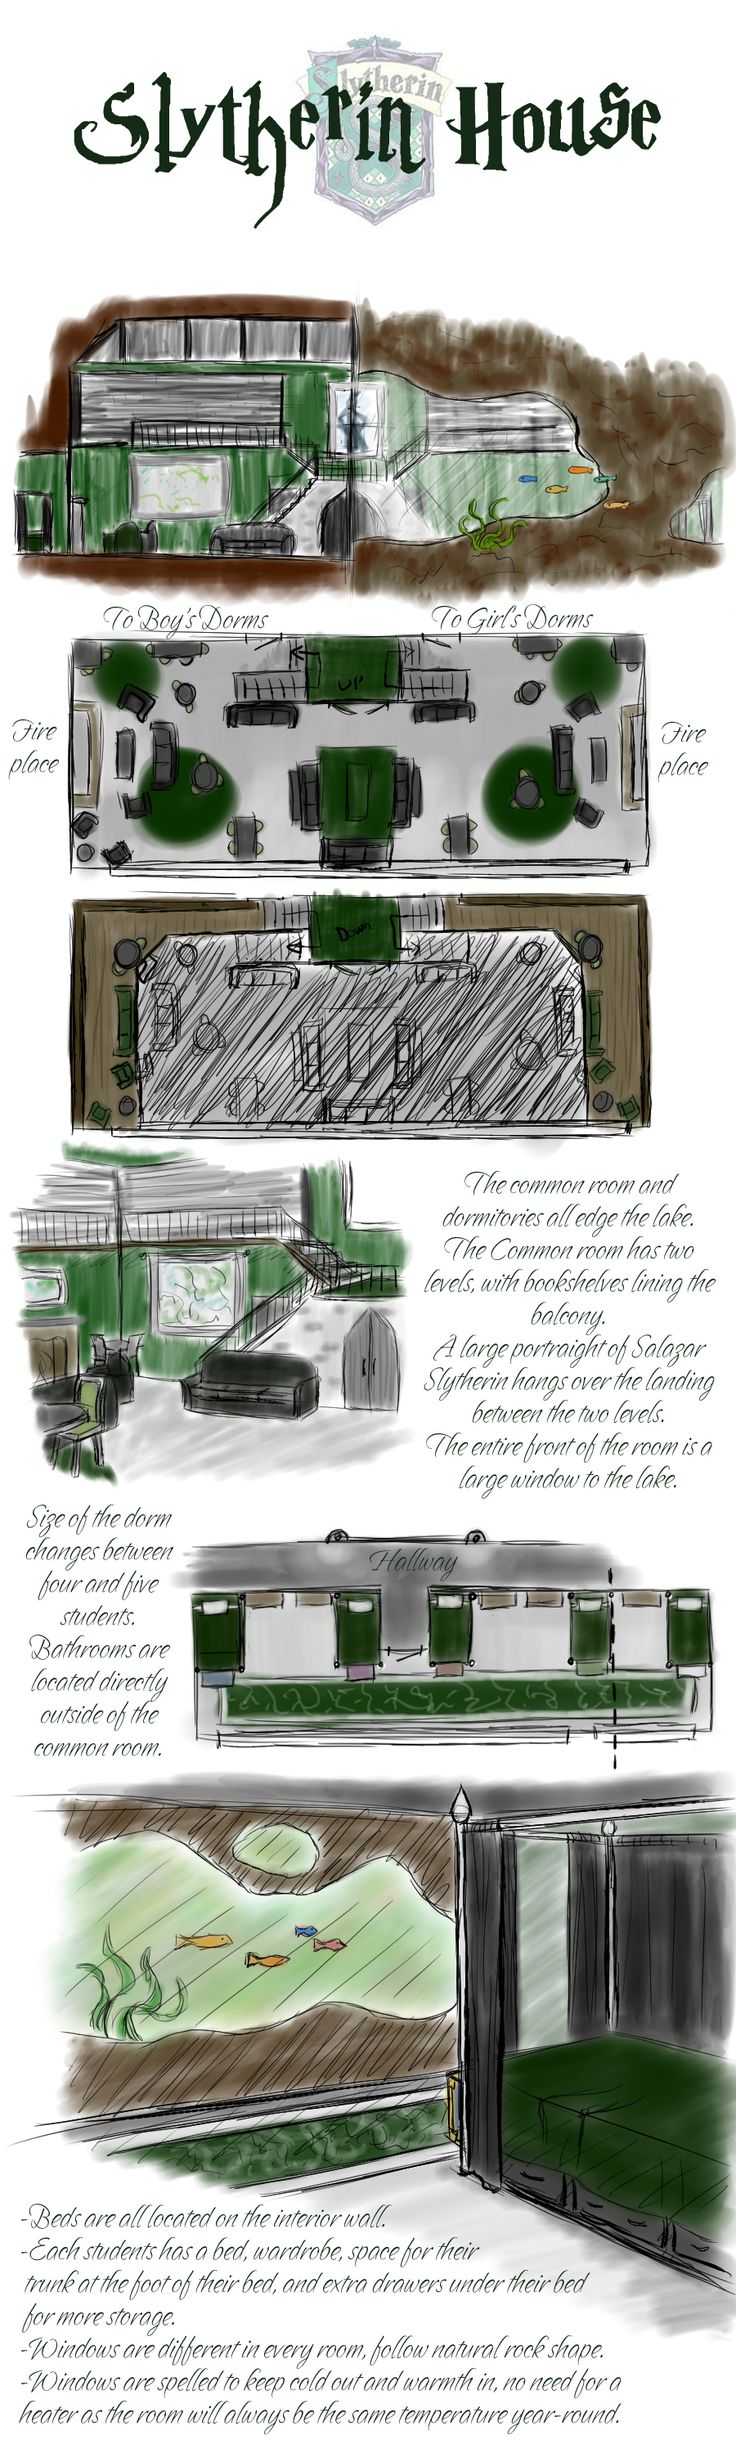 Slytherin House by *Whisperwings on deviantART     I think I would definitely be a slytherin.  Hopefully not a dick though.